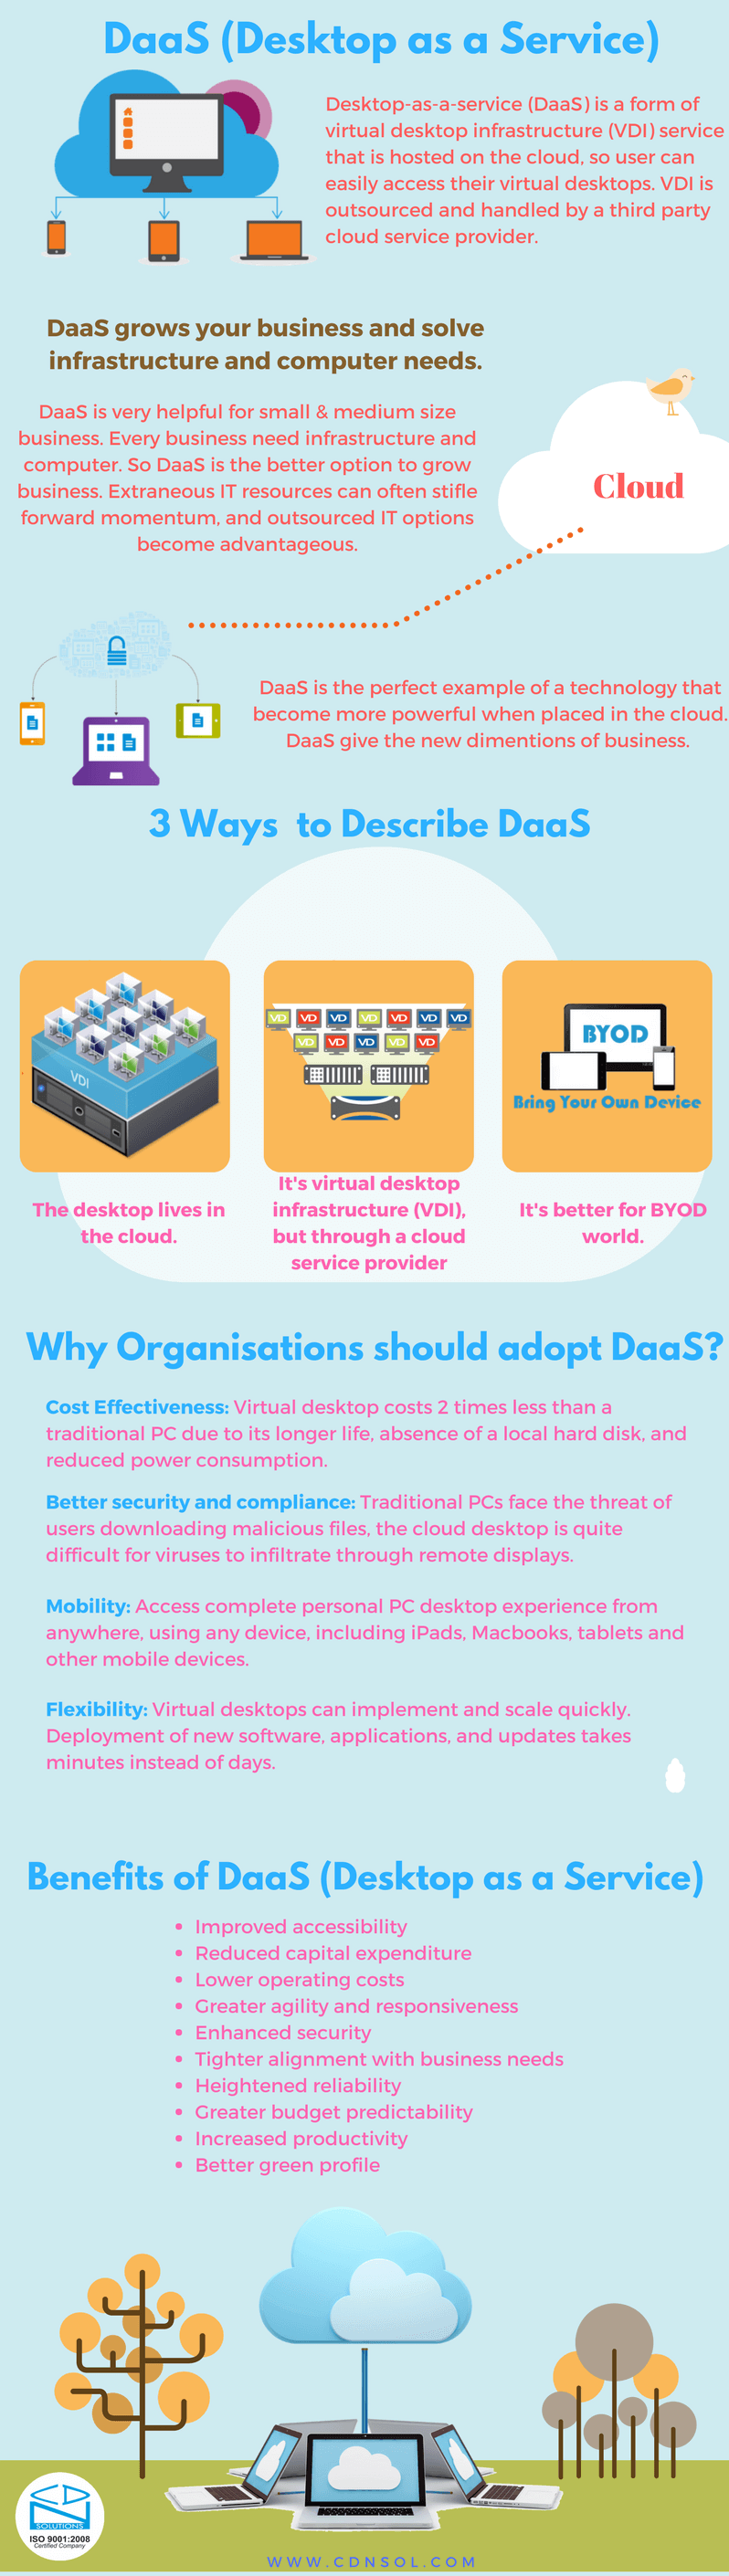 what-is-daas-desktop-as-a-service-and-why-organisation-should-adopt-daas-infographic-plaza